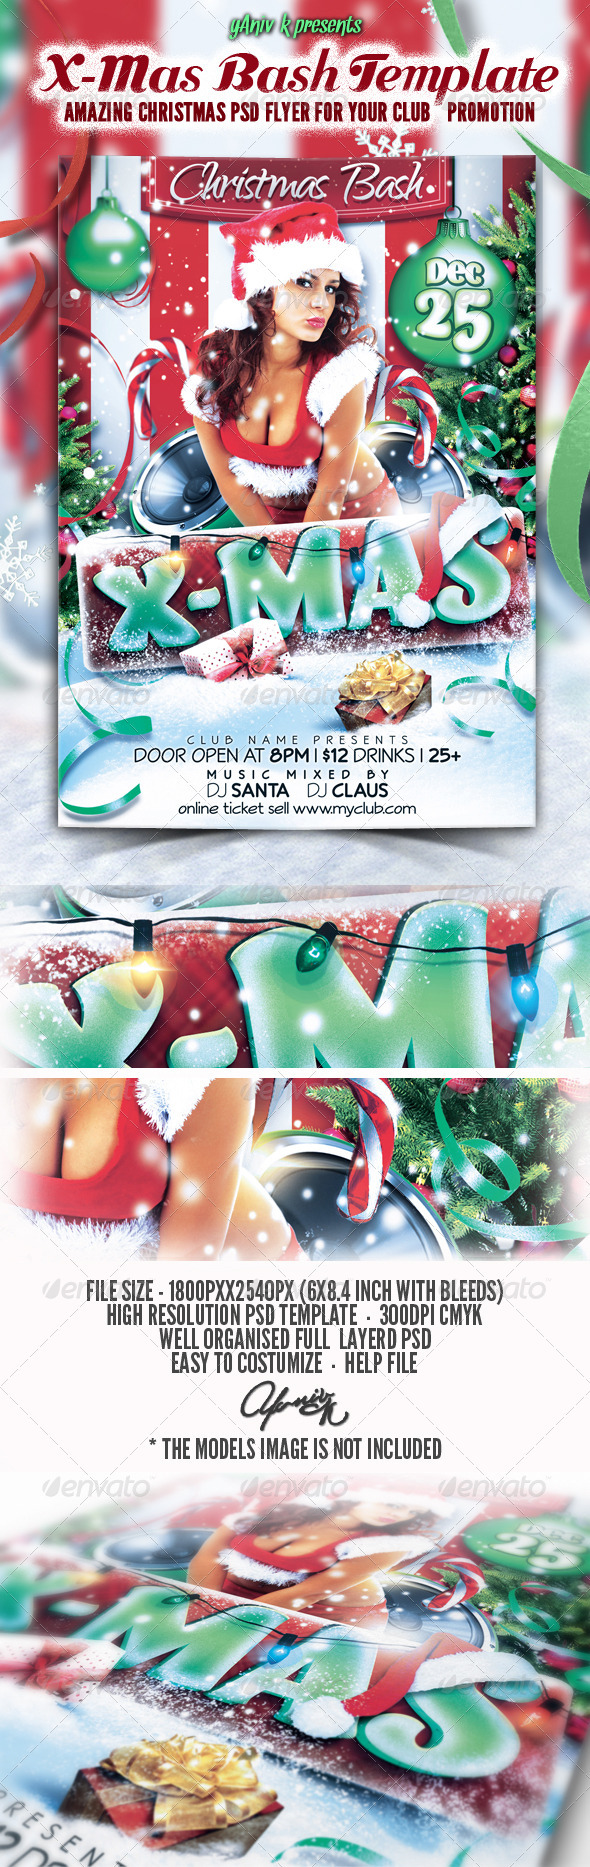 X-Mas Bash Flyer Template - Flyers Print Templates